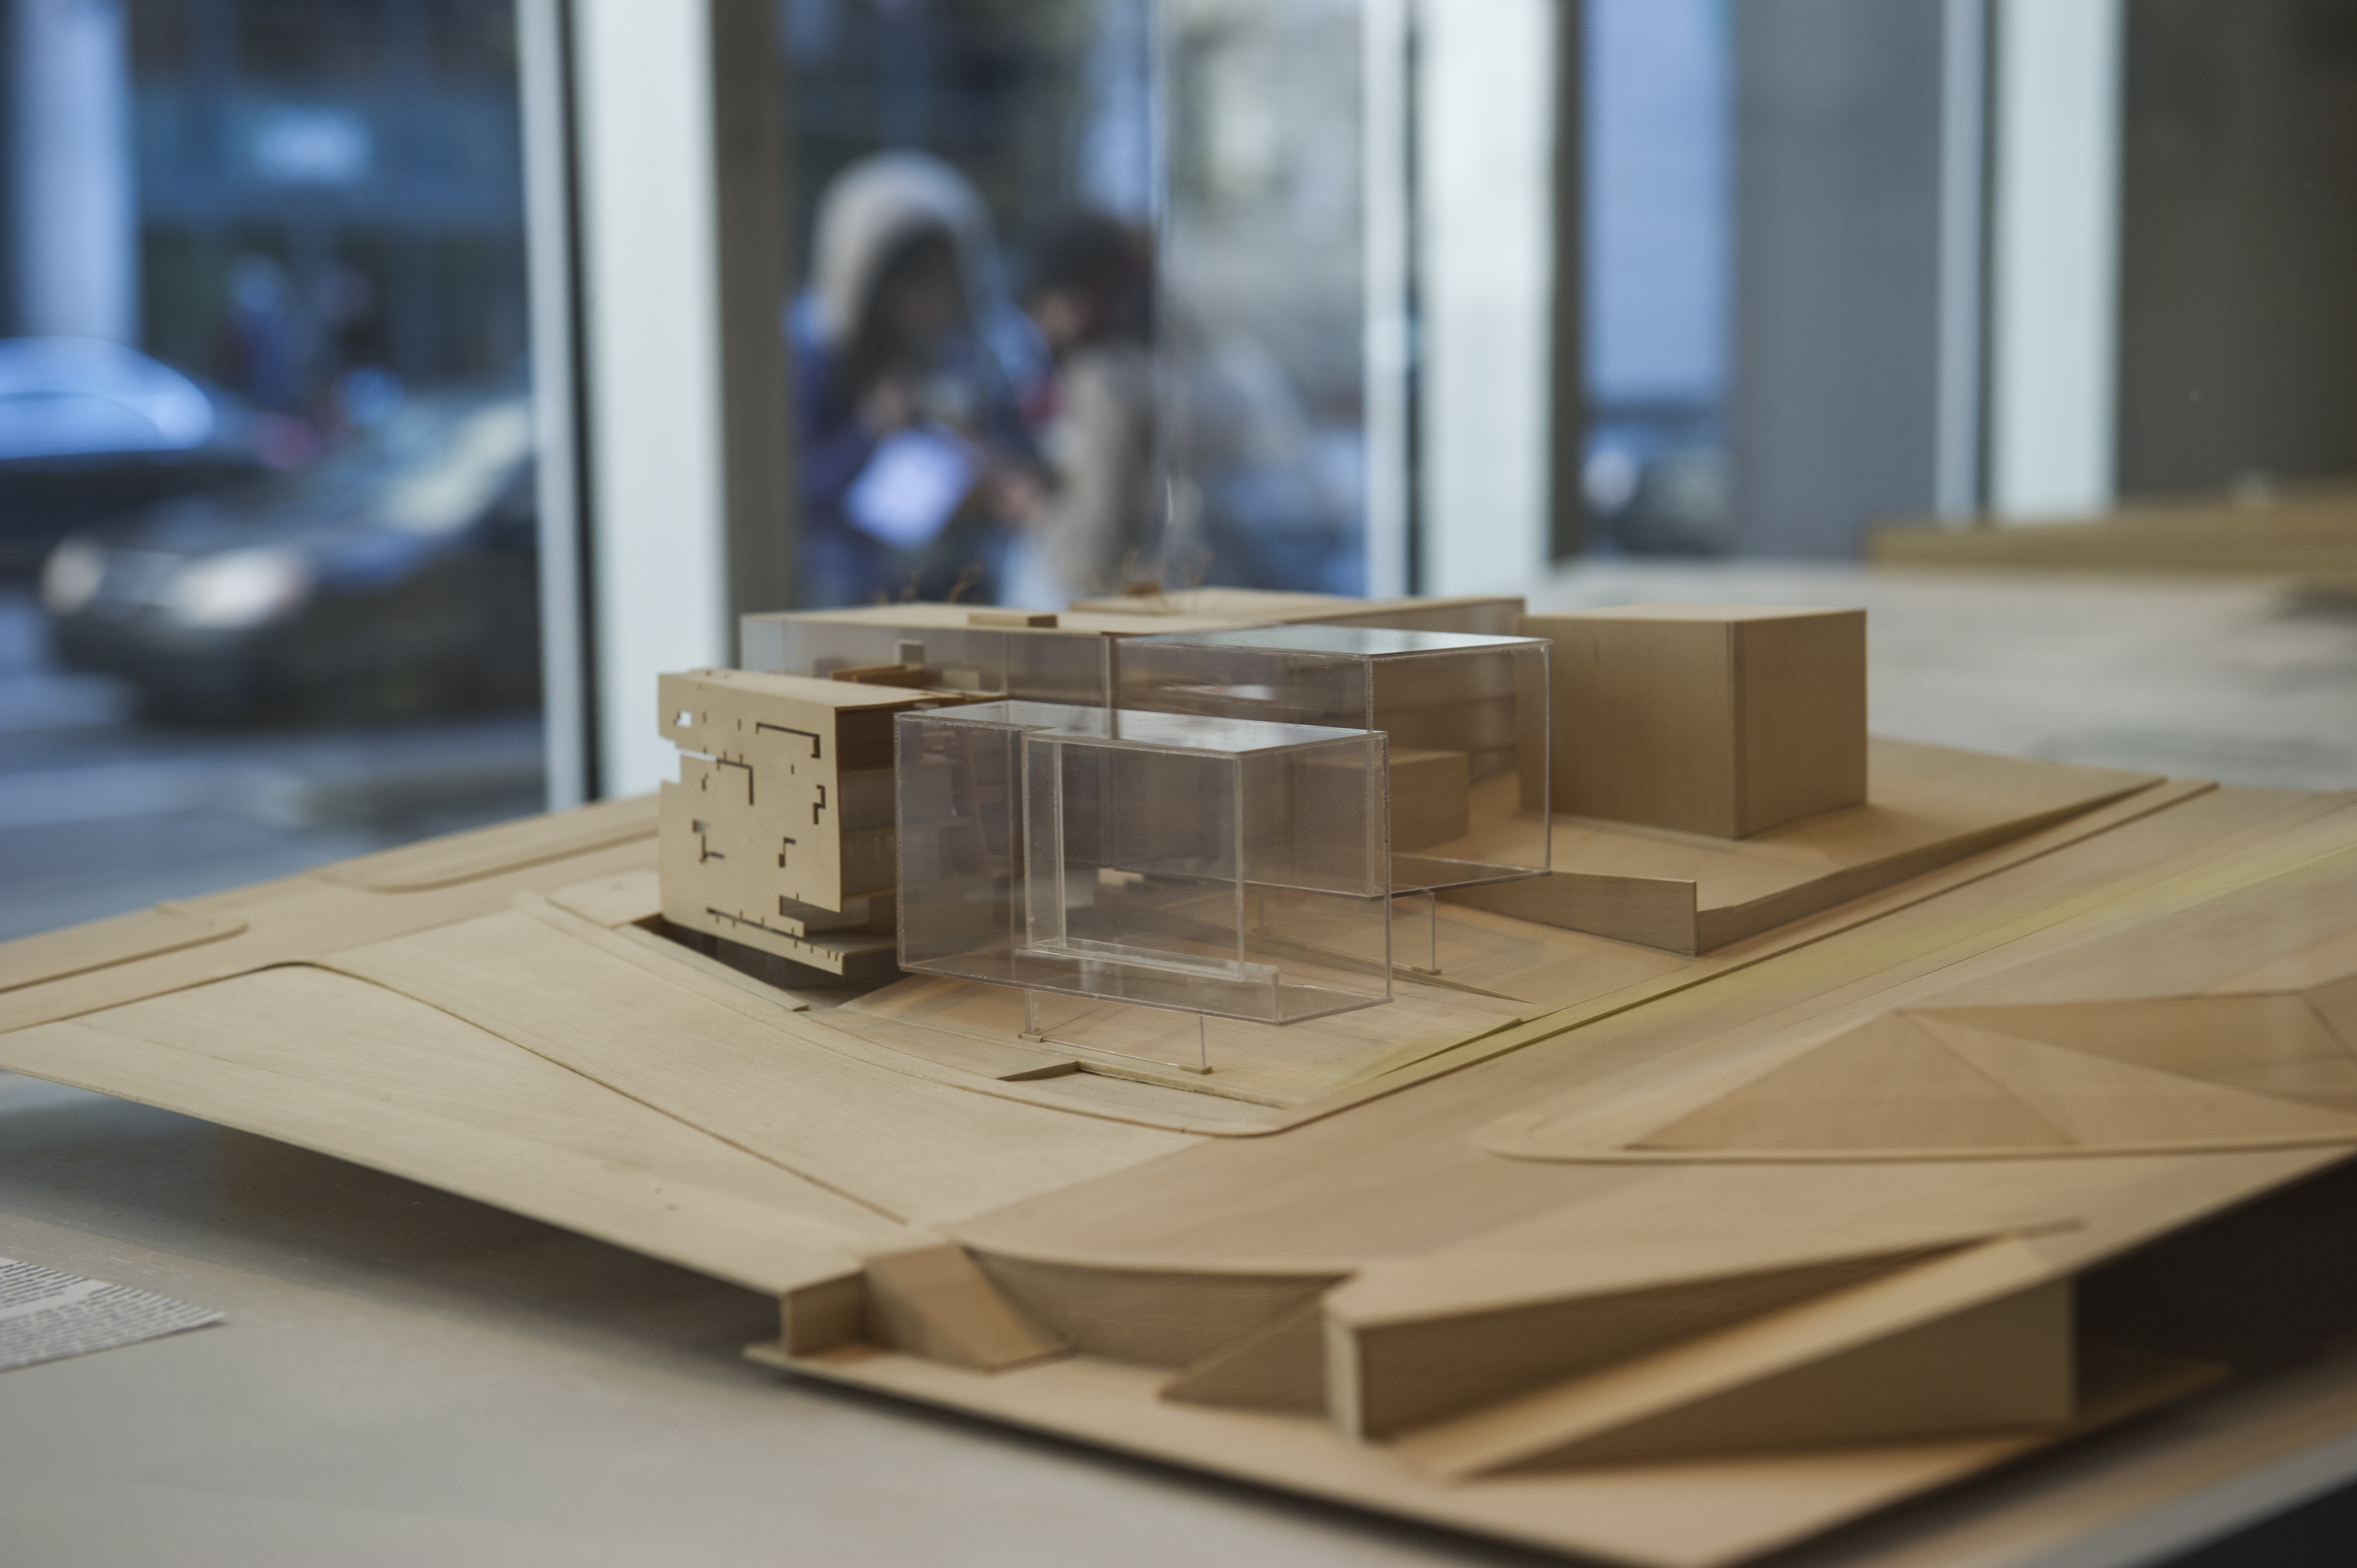 This cardboard model could have become McGill University's Art Pavilion. Photo by Andrej Ivanov.